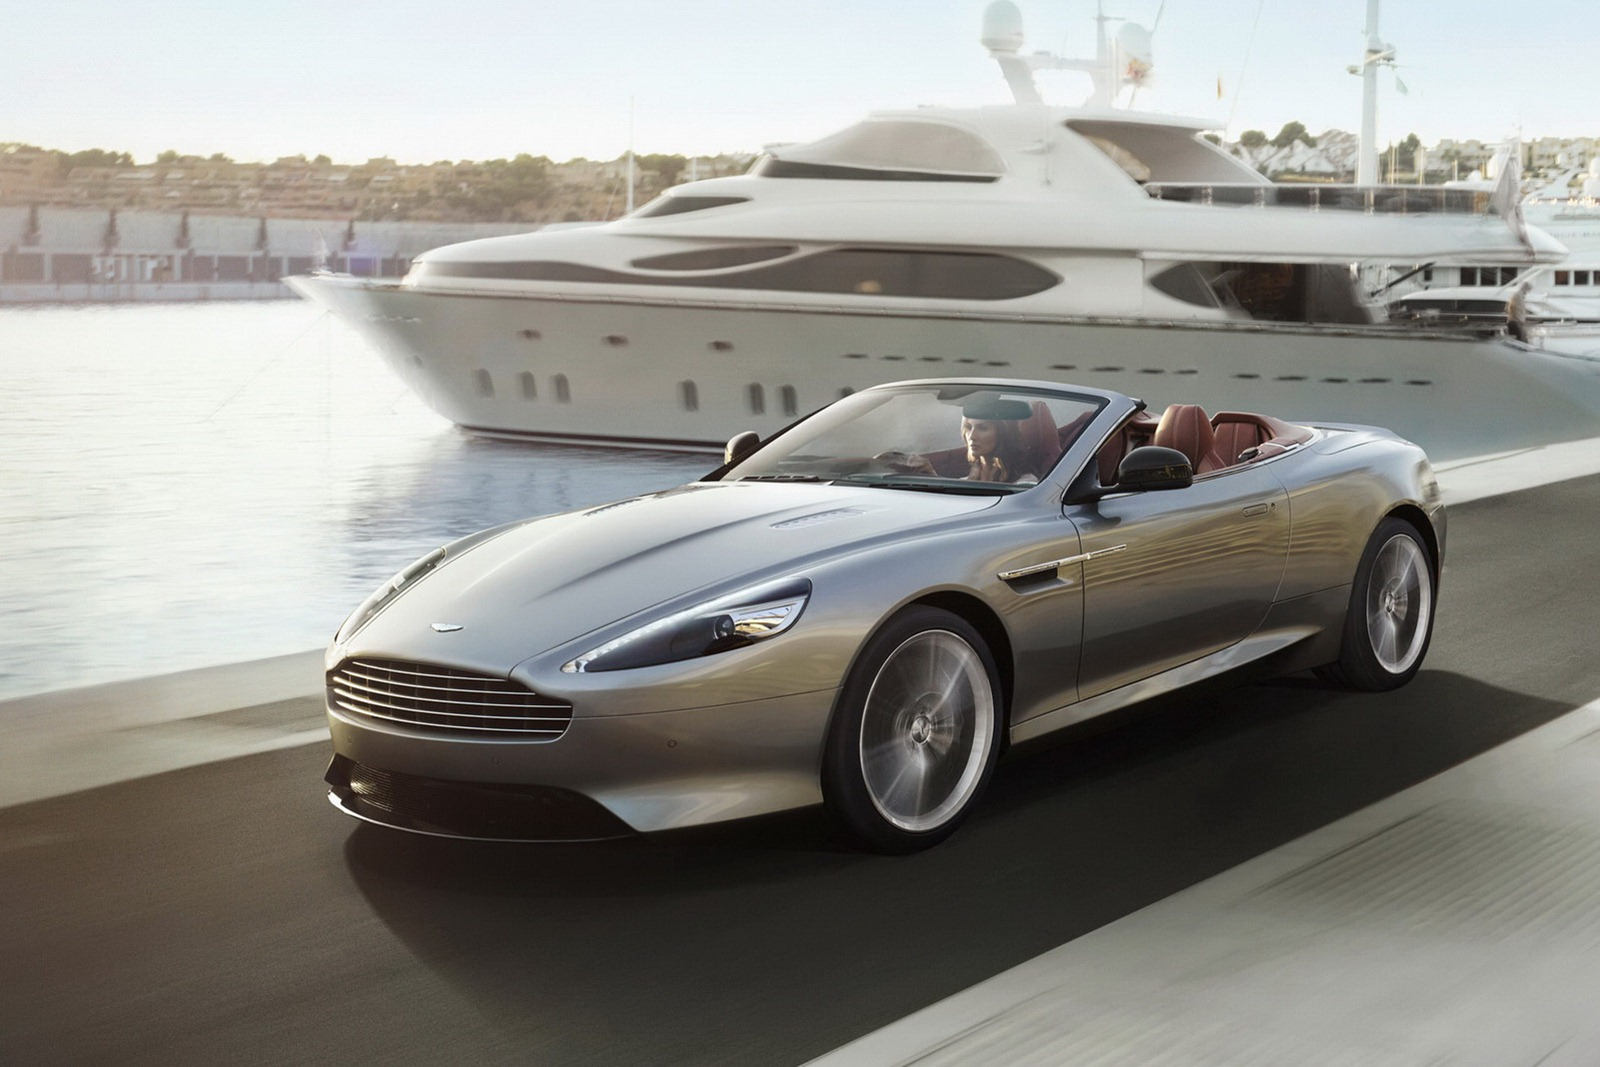 2013 Aston Martin DB9 Revealed - autoevolution